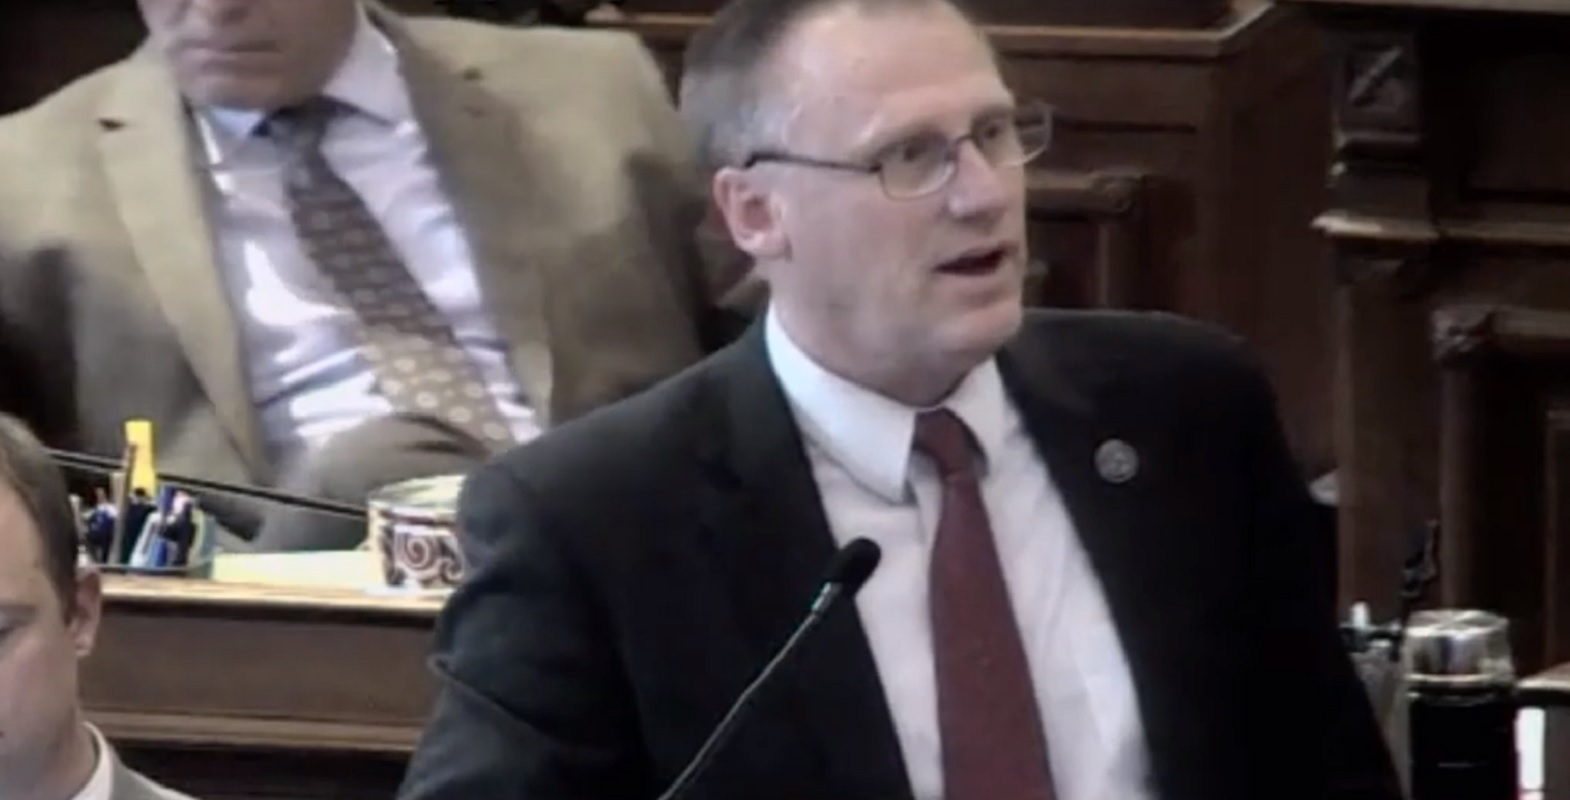 Iowa state senator Mark Costello penned the discriminatory amendment